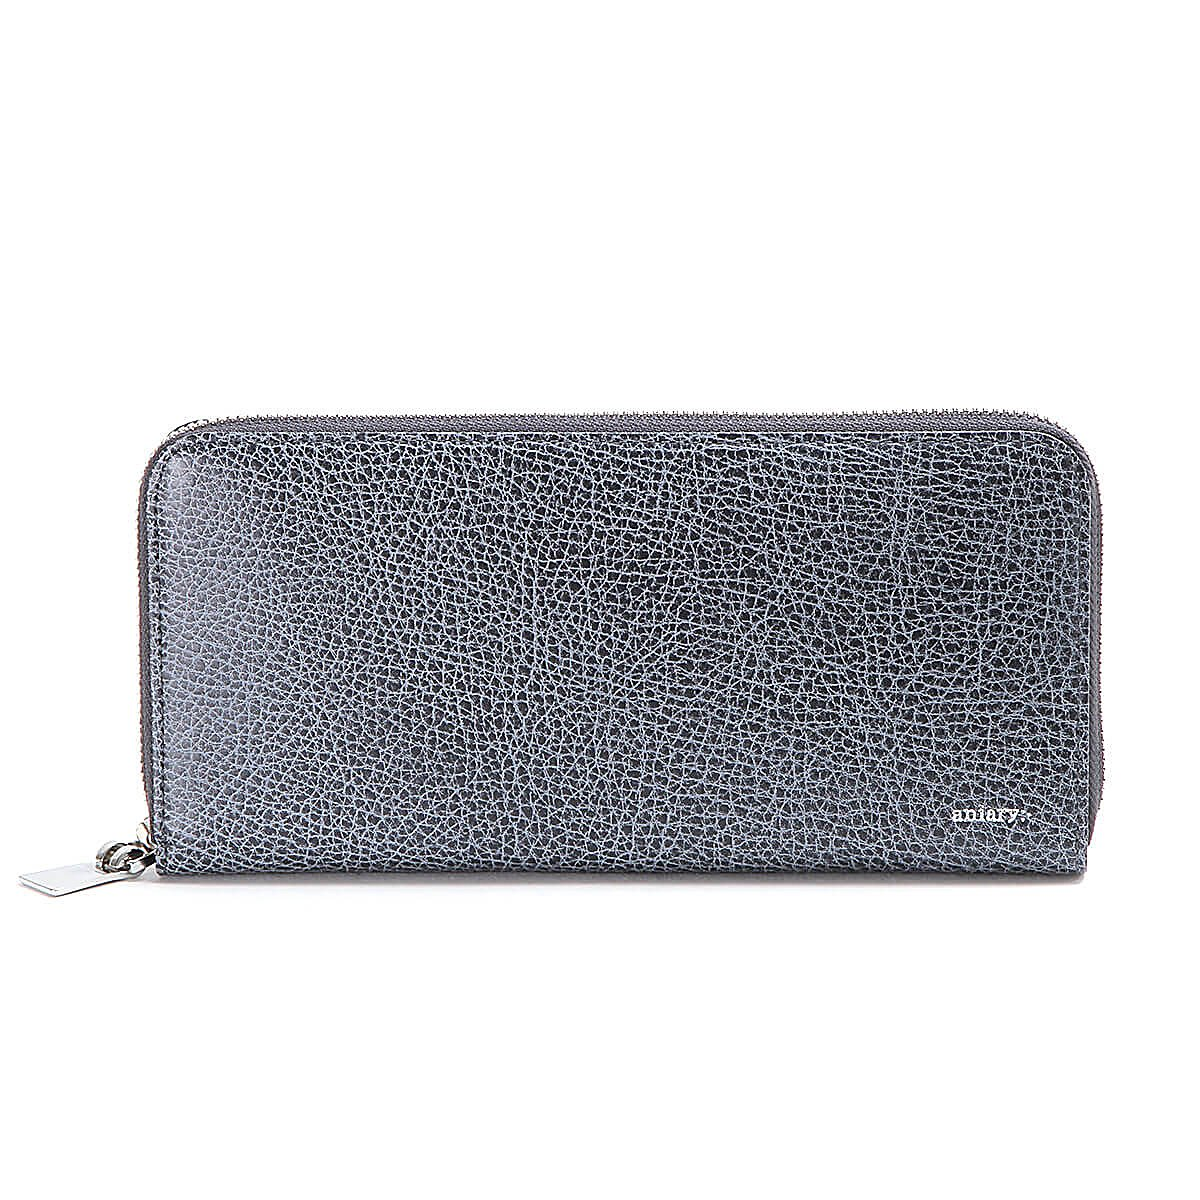 アニアリ 長財布 ラウンドL Zip Bill Holder Grind Leather 15-20003 B077TDR7HQ NavyGray NavyGray